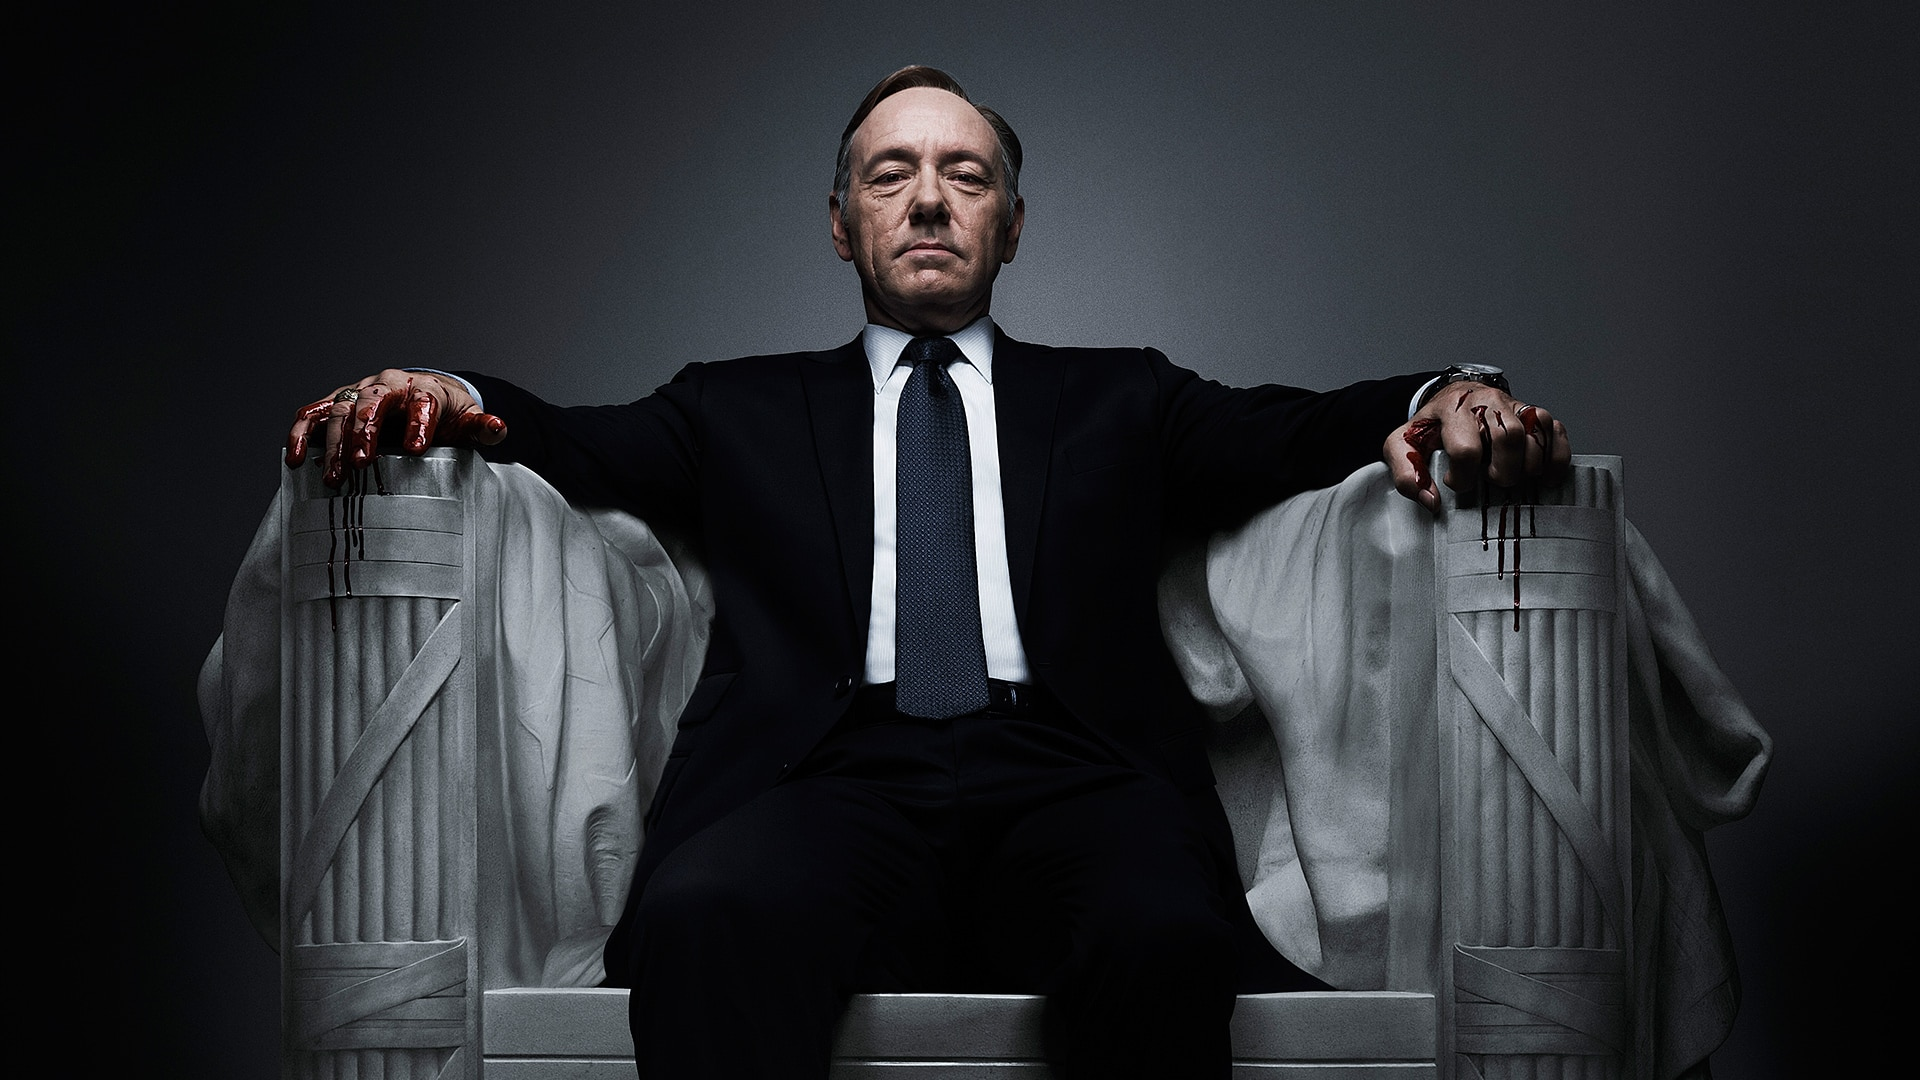 The former House of Cards actor denied the allegations.